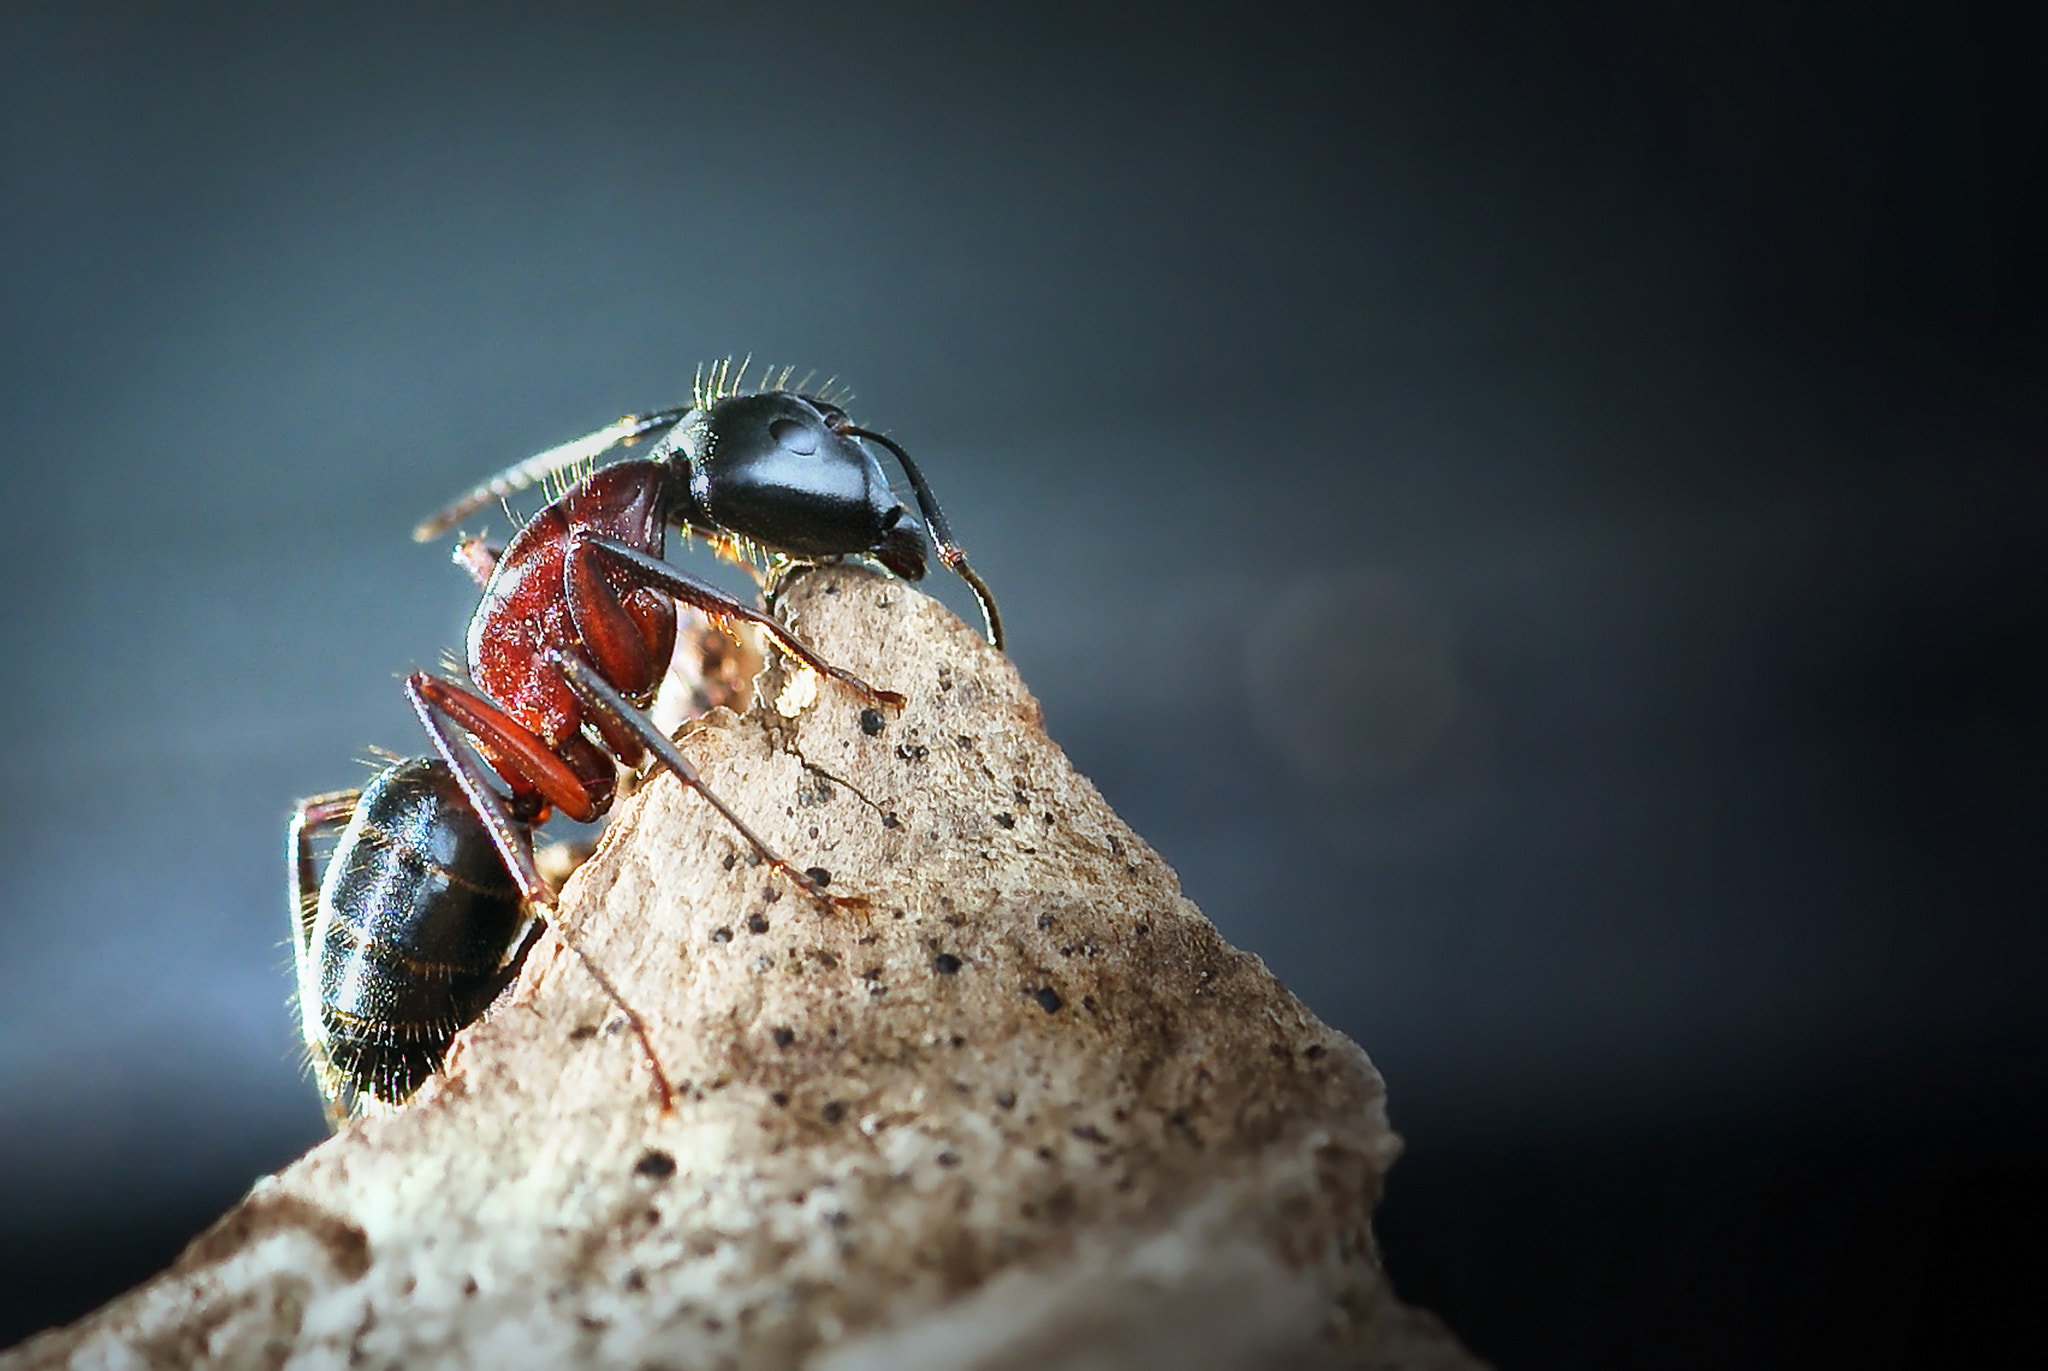 Photograph Scout Ant by Helena Flykt on 500px